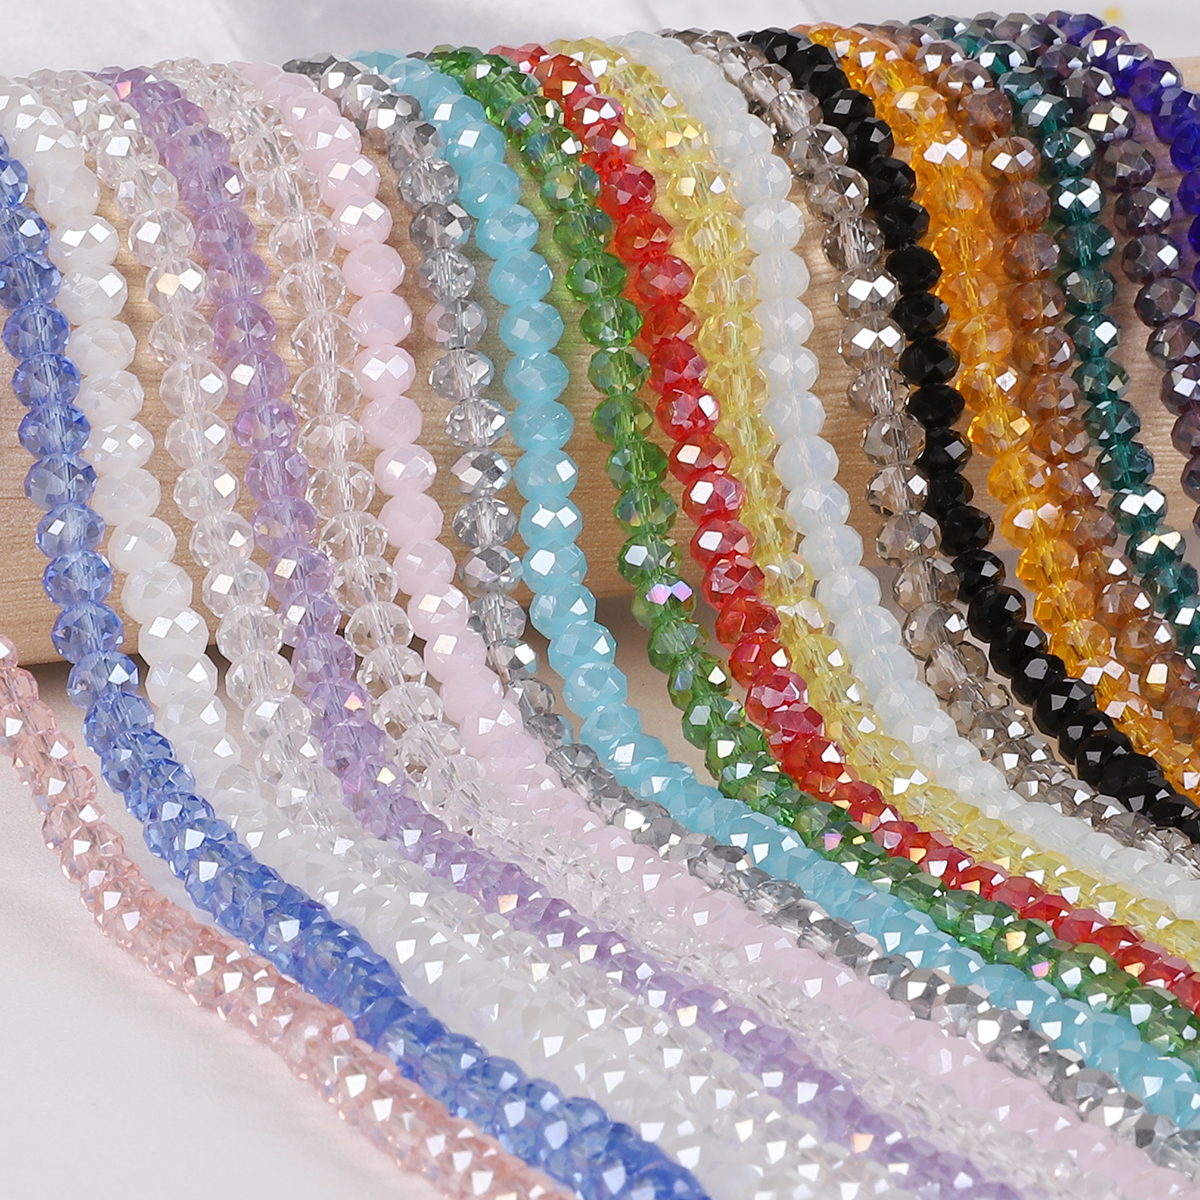 2mm 3mm 4mm 6mm 8mm Rondelle Austria Crystal Beads Faceted Glass Beads Loose Spacer Beads For DIY Bracelet Jewelry Making(China)